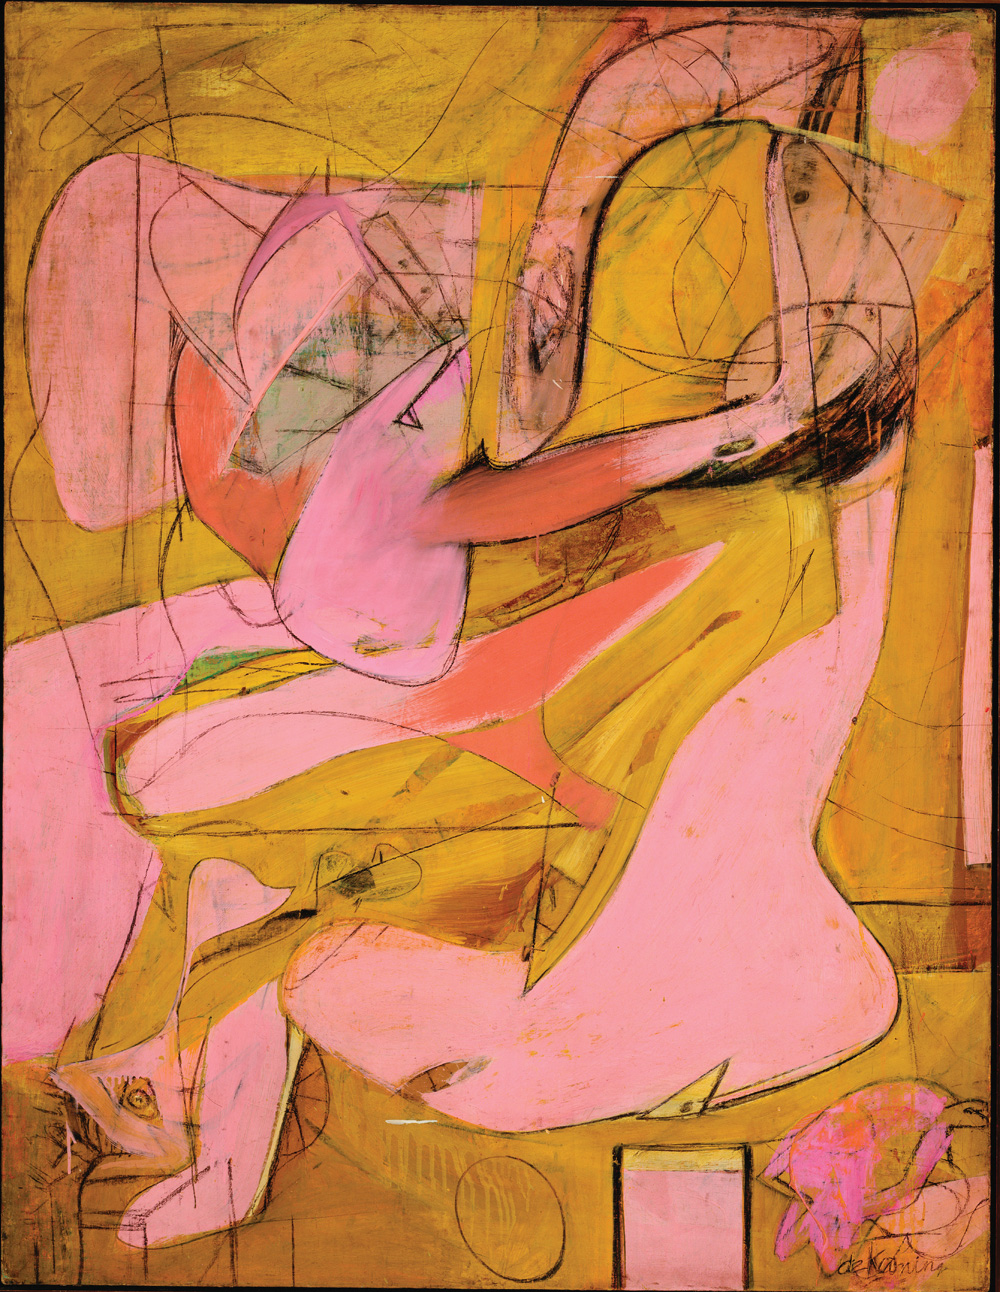 "Willem de Kooning (American, born the Netherlands. 1904-1997) Pink Angels c. 1945 Oil and charcoal on canvas 52 x 40"" (132.1 x 101.6 cm) Frederick R. Weisman Art Foundation, Los Angeles © 2011 The Willem de Kooning Foundation/Artists Rights Society (ARS), New York"